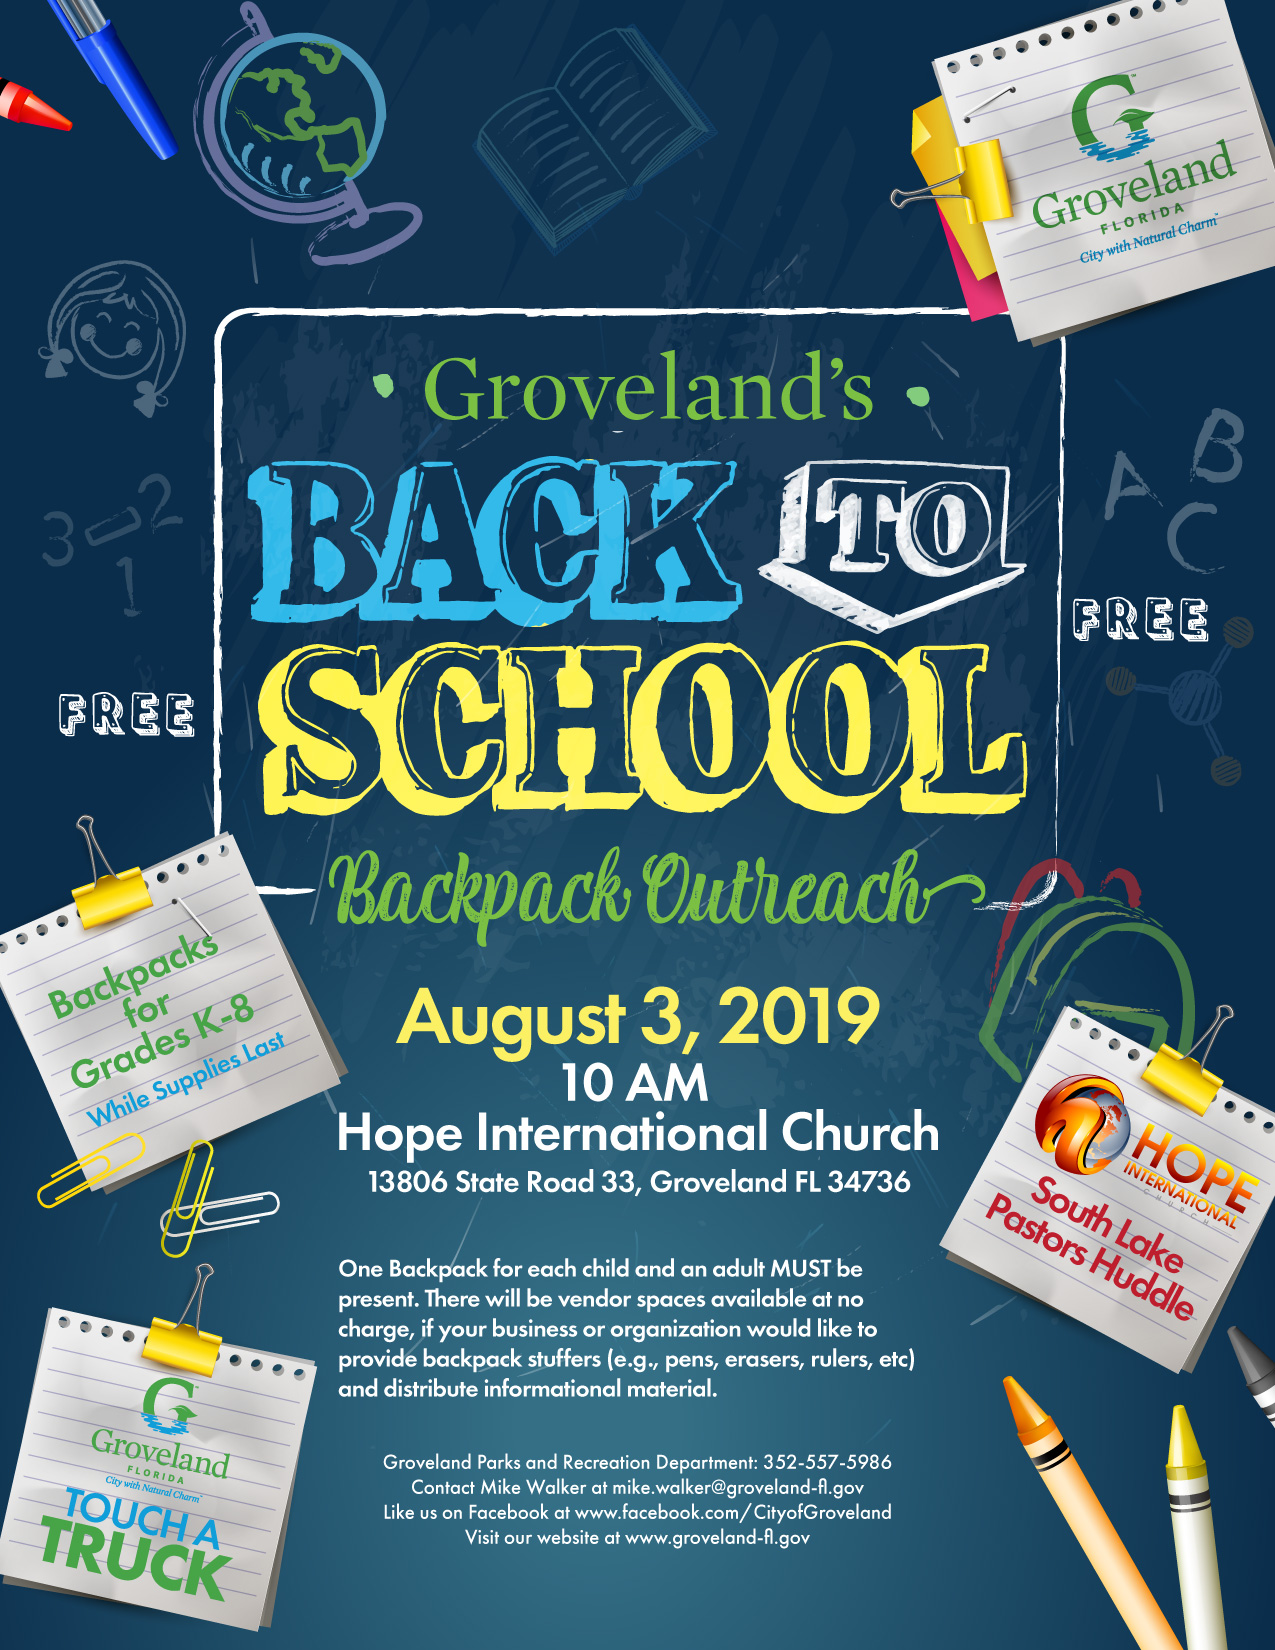 groveland-back-to-school-backpack-outreach-flier